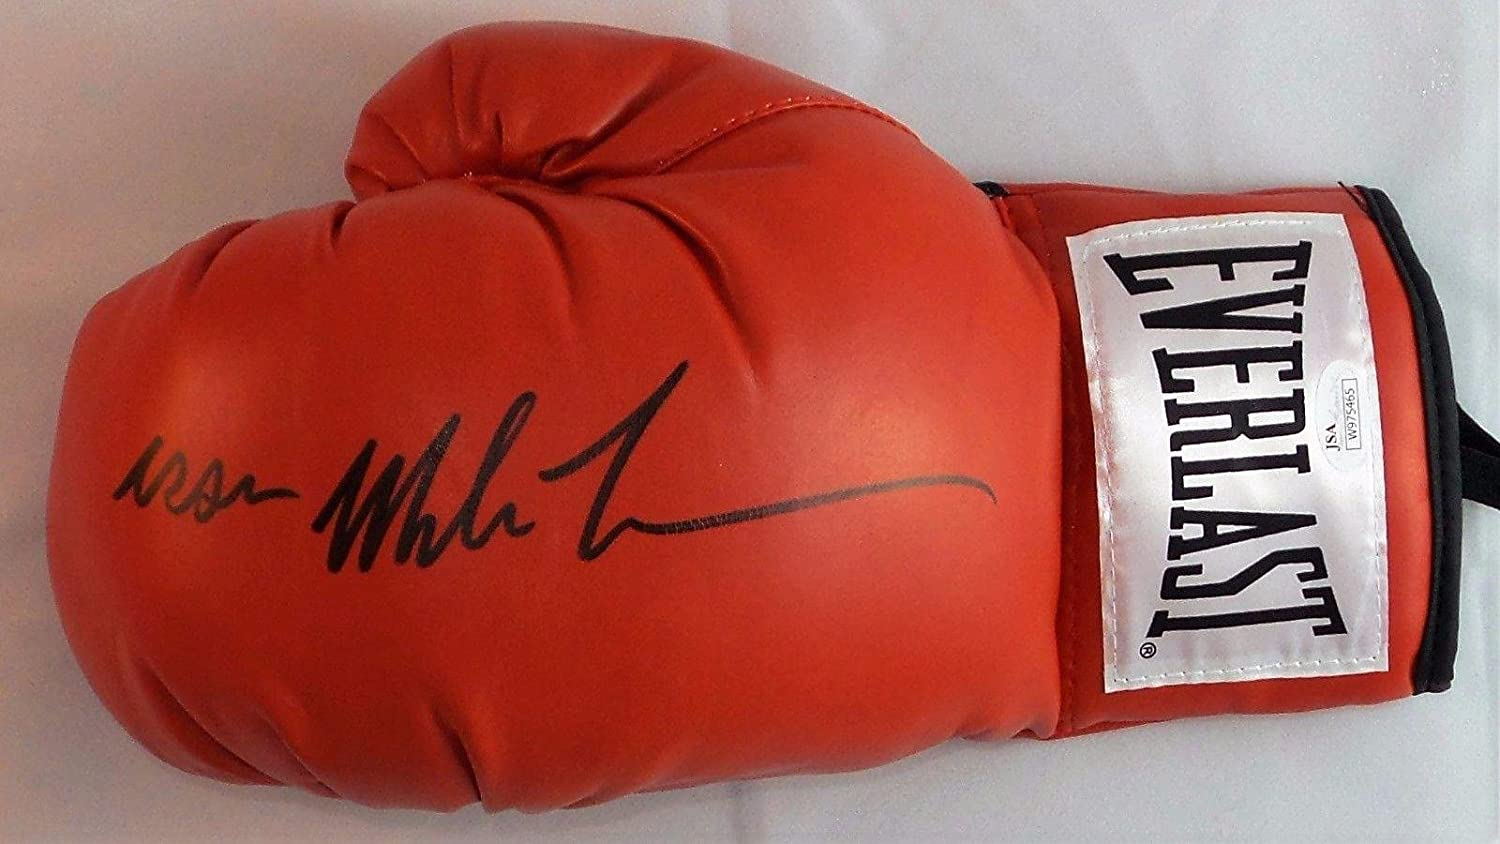 25abf50f6a1 Iron Mike Tyson Signed Autographed Red Everlast Boxing Glove Authentic  Left. - JSA Certified - Autographed Boxing Gloves at Amazon s Sports  Collectibles ...